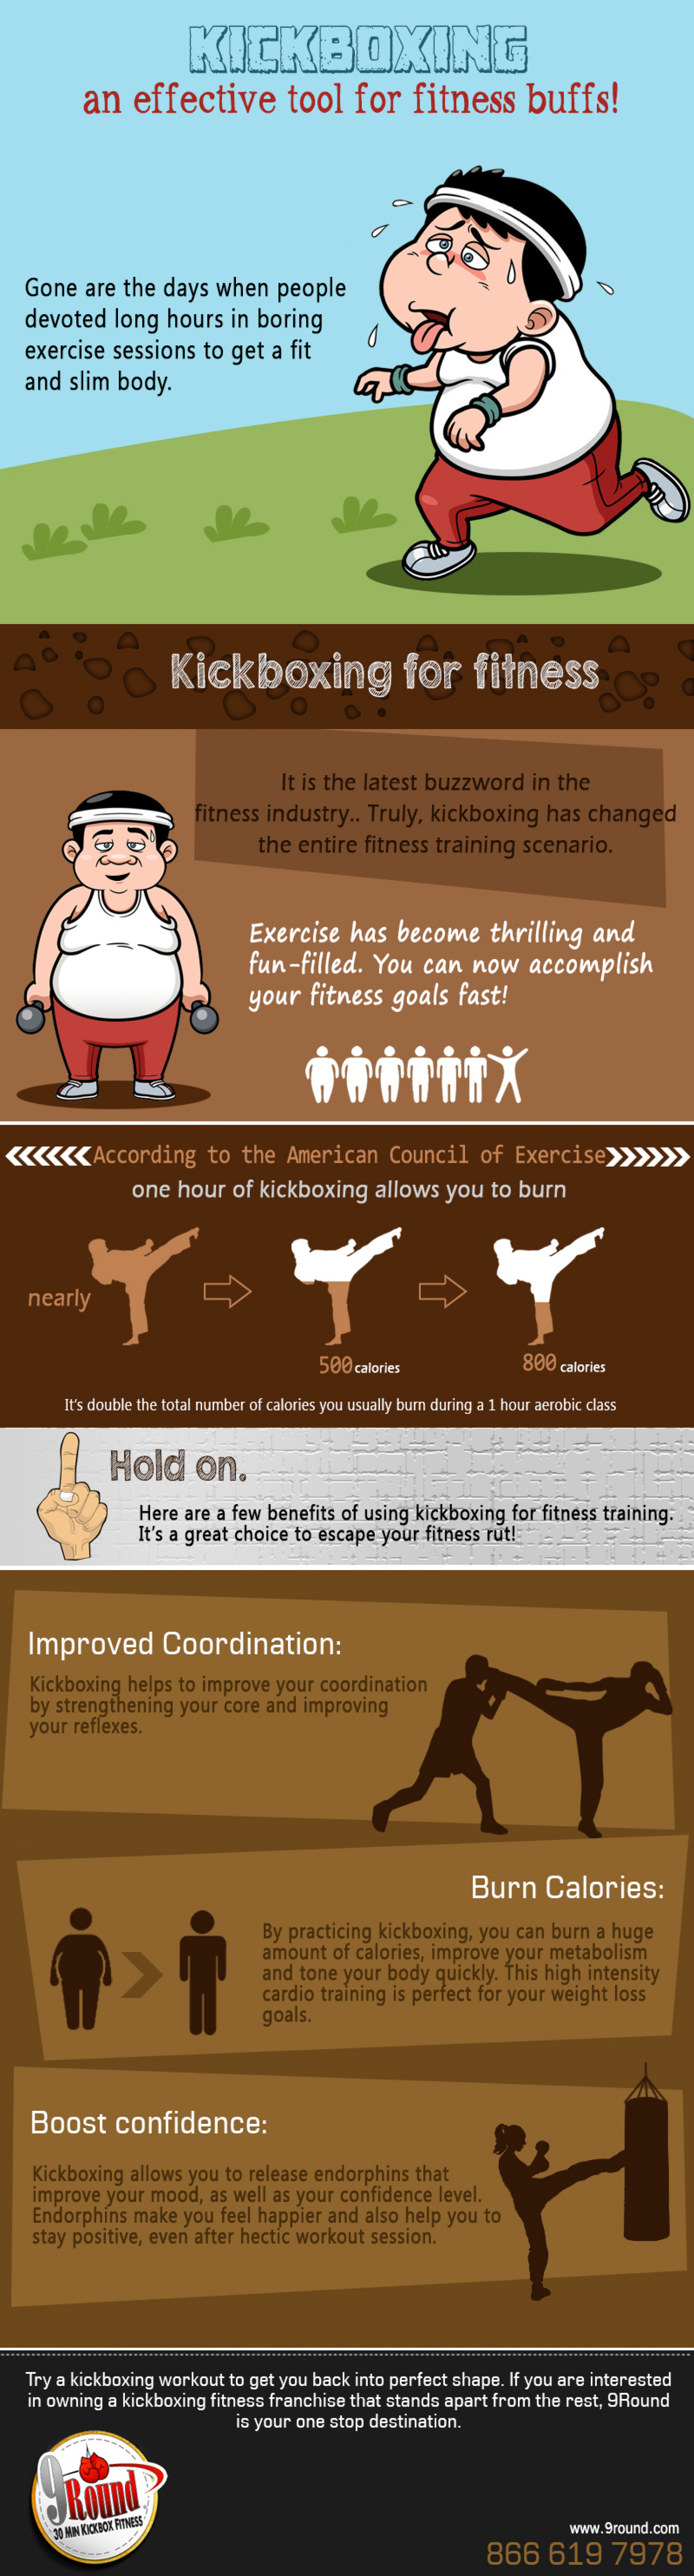 Kickboxing – an effective tool for fitness buffs! Infographic